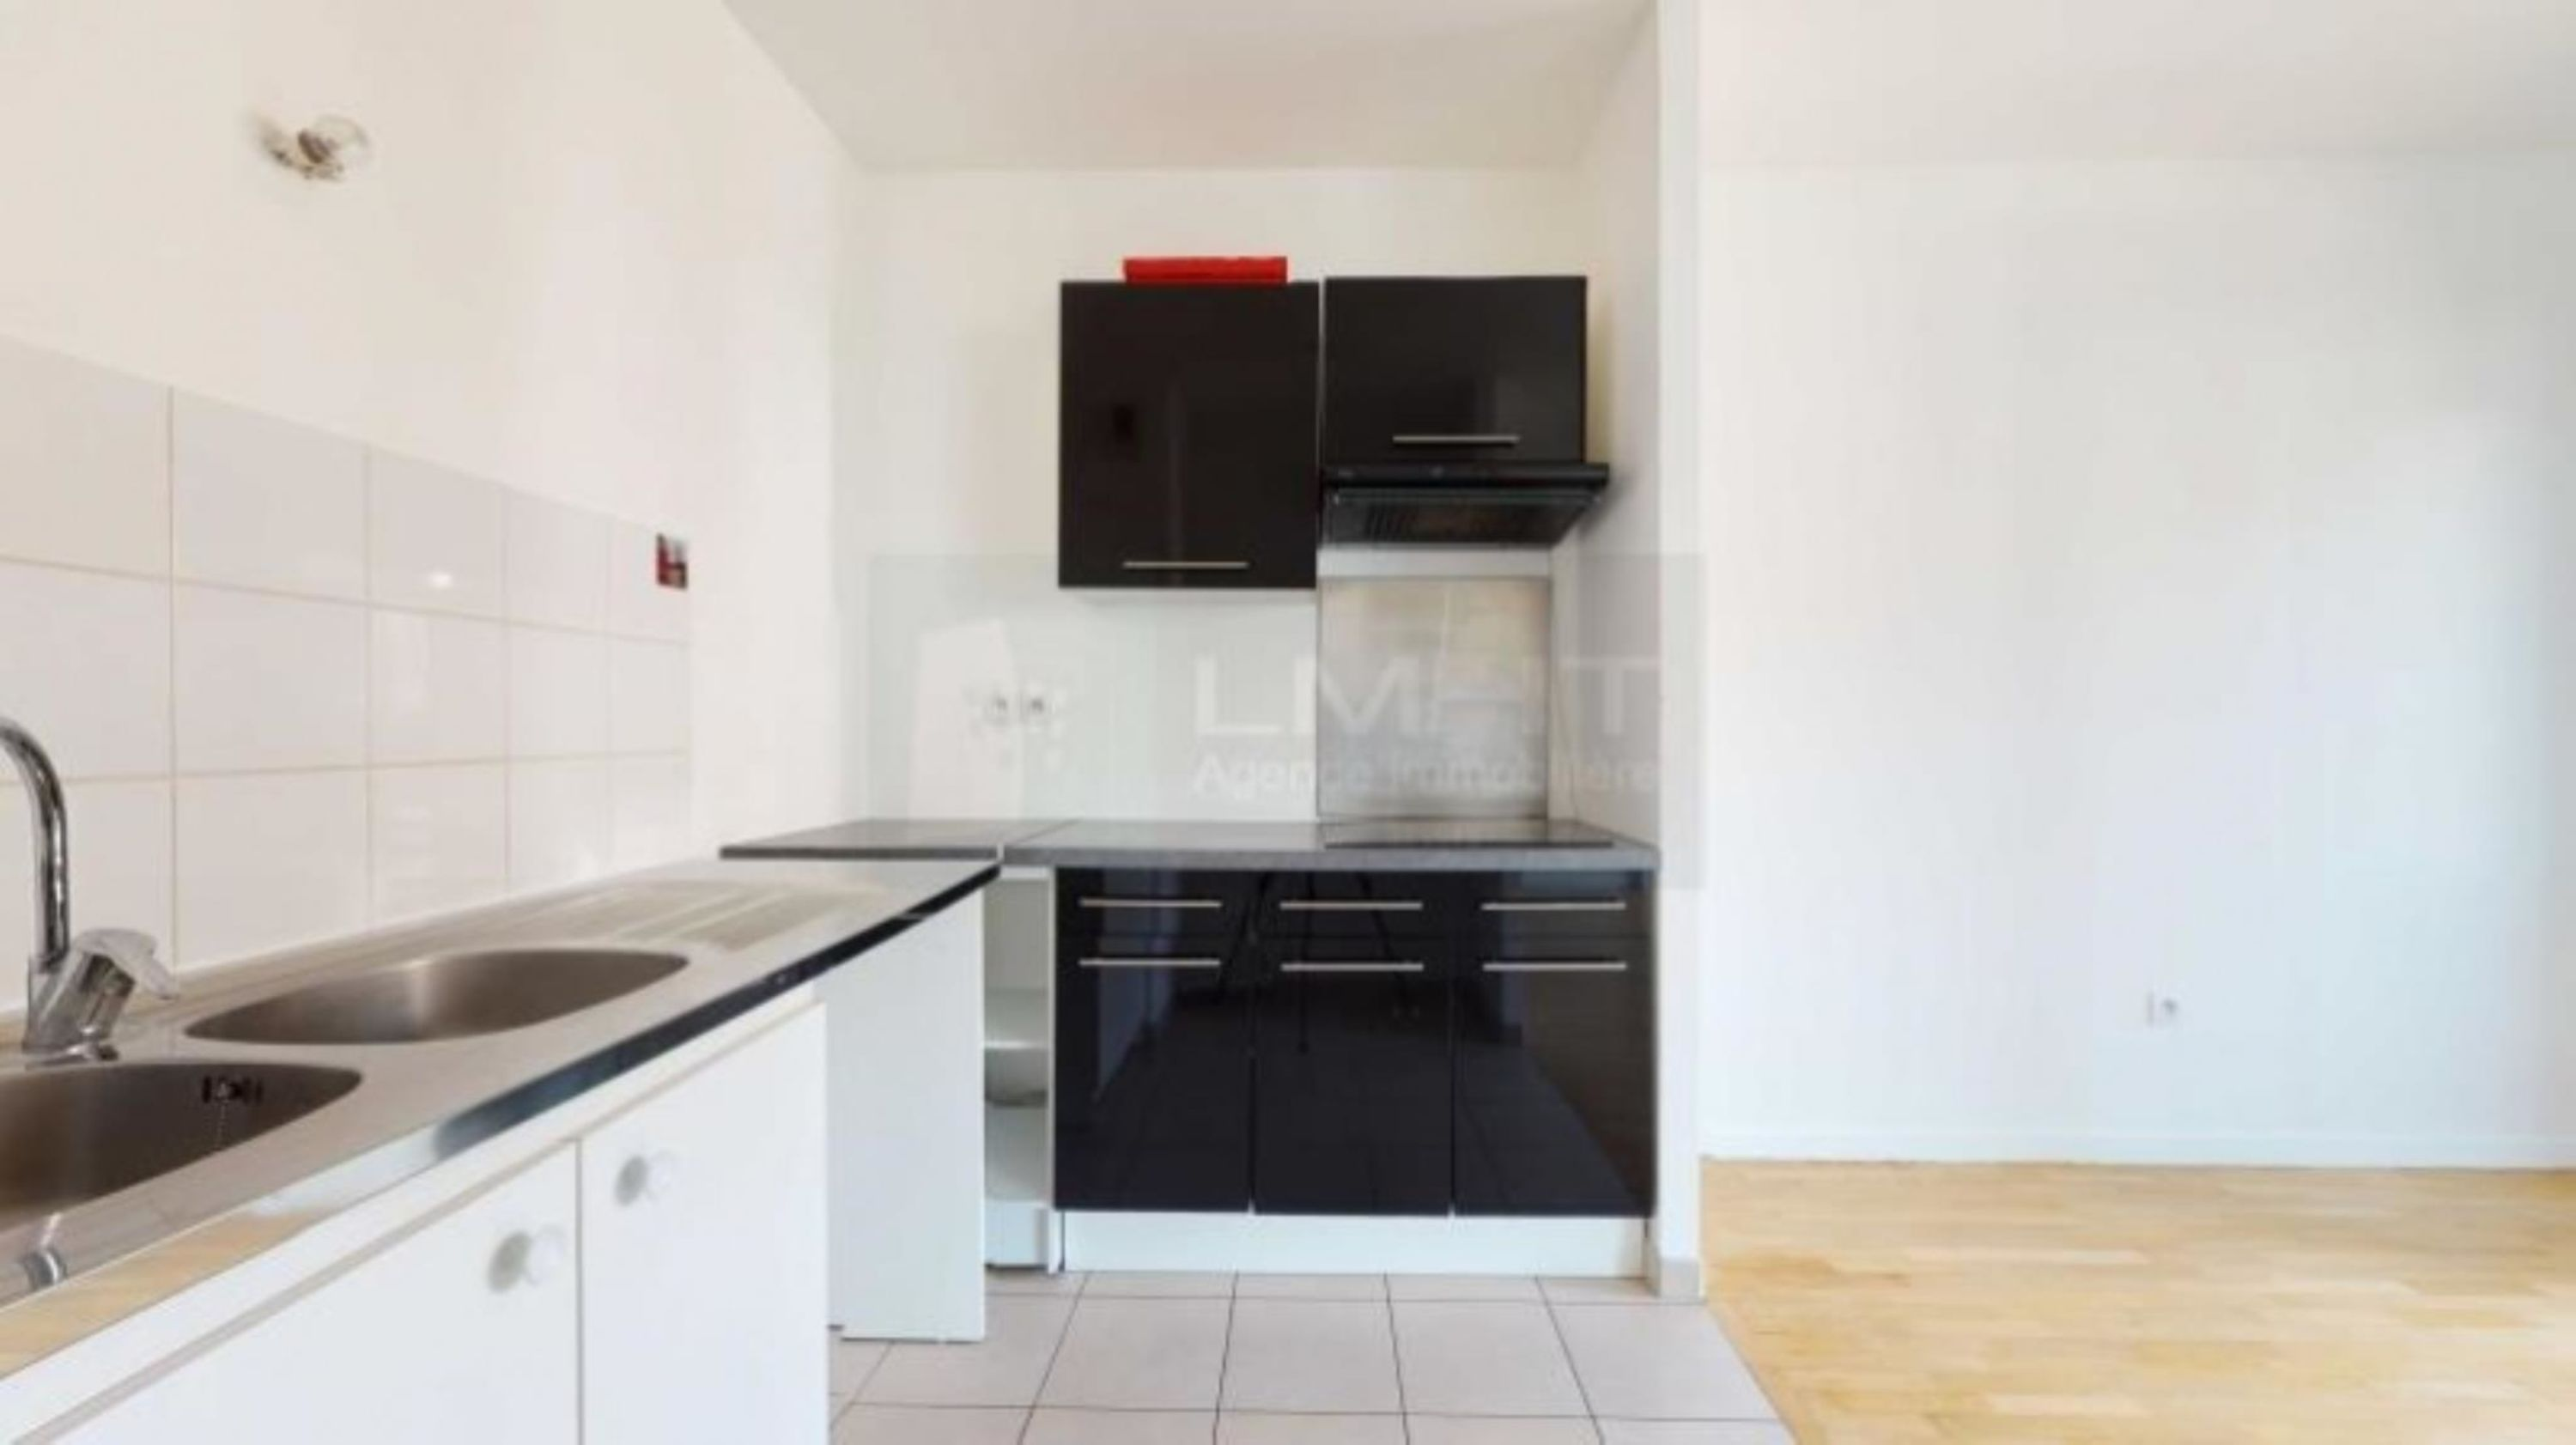 agence immobilière sevres 92 le chesnay 78 achat vente location appartement maison immobilier LMHT ANF BTAOQNJC